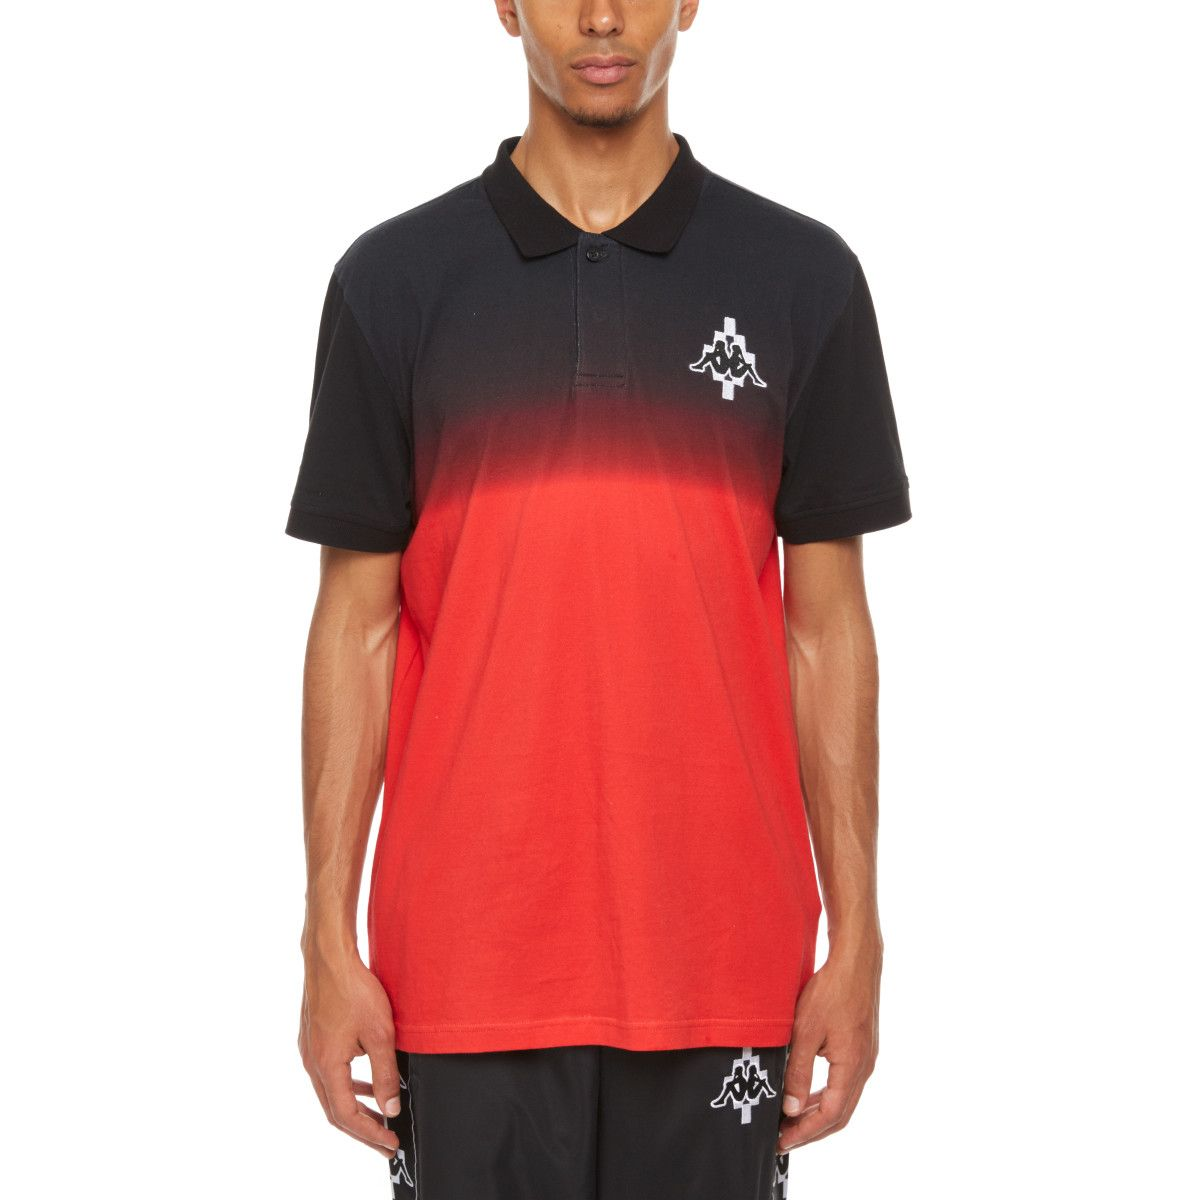 5021d9ff Kappa Gradient polo from the S/S2018 Marcelo Burlon County of Milan  collection in red